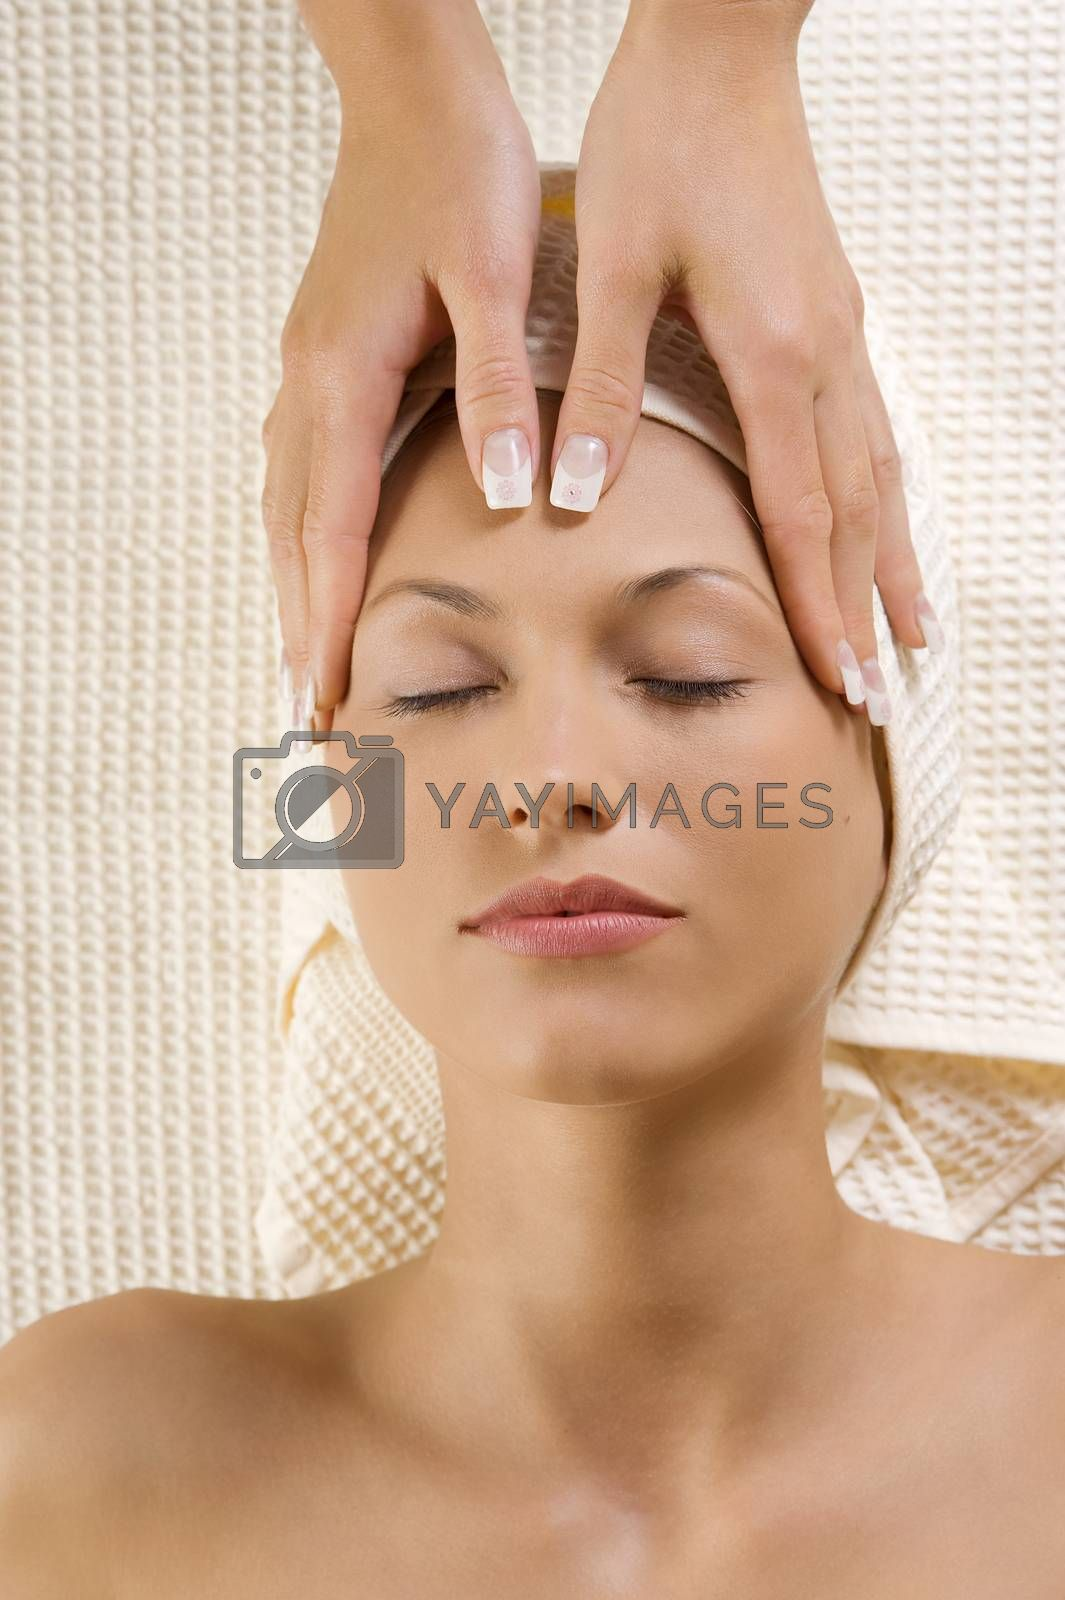 Royalty free image of hands massage on head by fotoCD